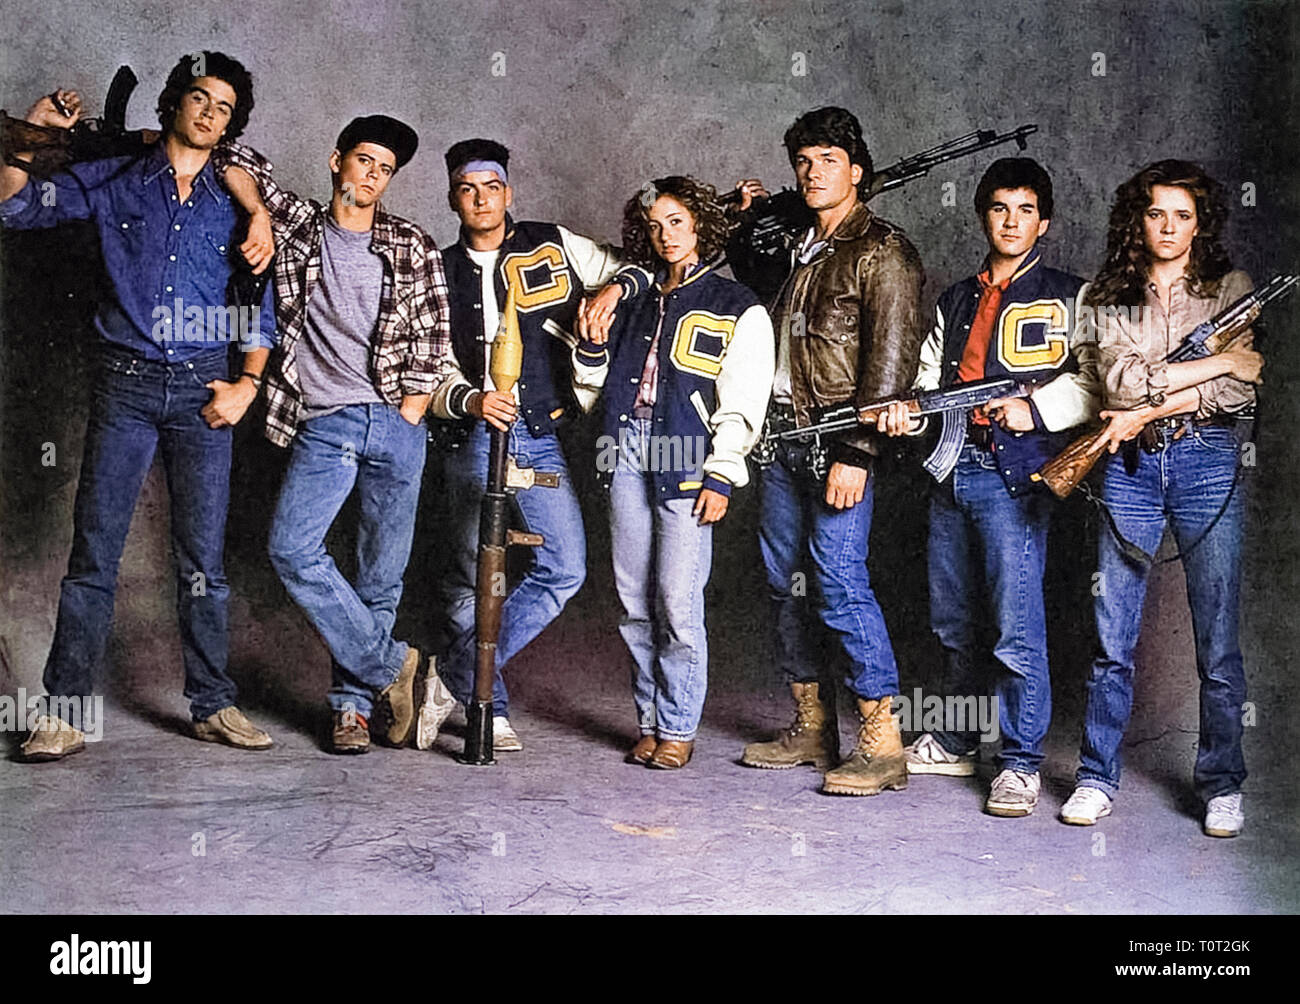 Red Dawn (1984) directed by John Milius and starring Patrick Swayze, C. Thomas Howell and Lea Thompson. A group of teenagers form a resistance movement against Soviet forces invading the mainland USA. - Stock Image